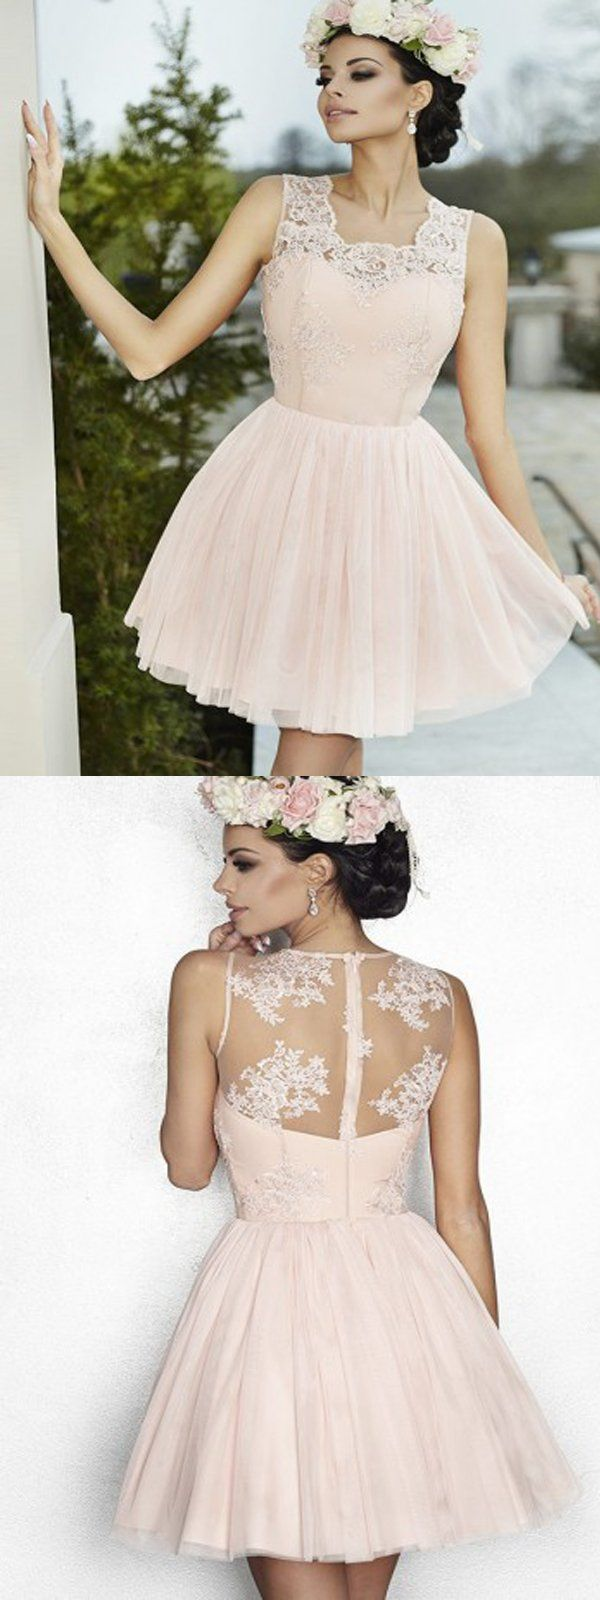 Pink see through lace dress  Cute Light Pink Lace Homecoming DressElegant See Through Back